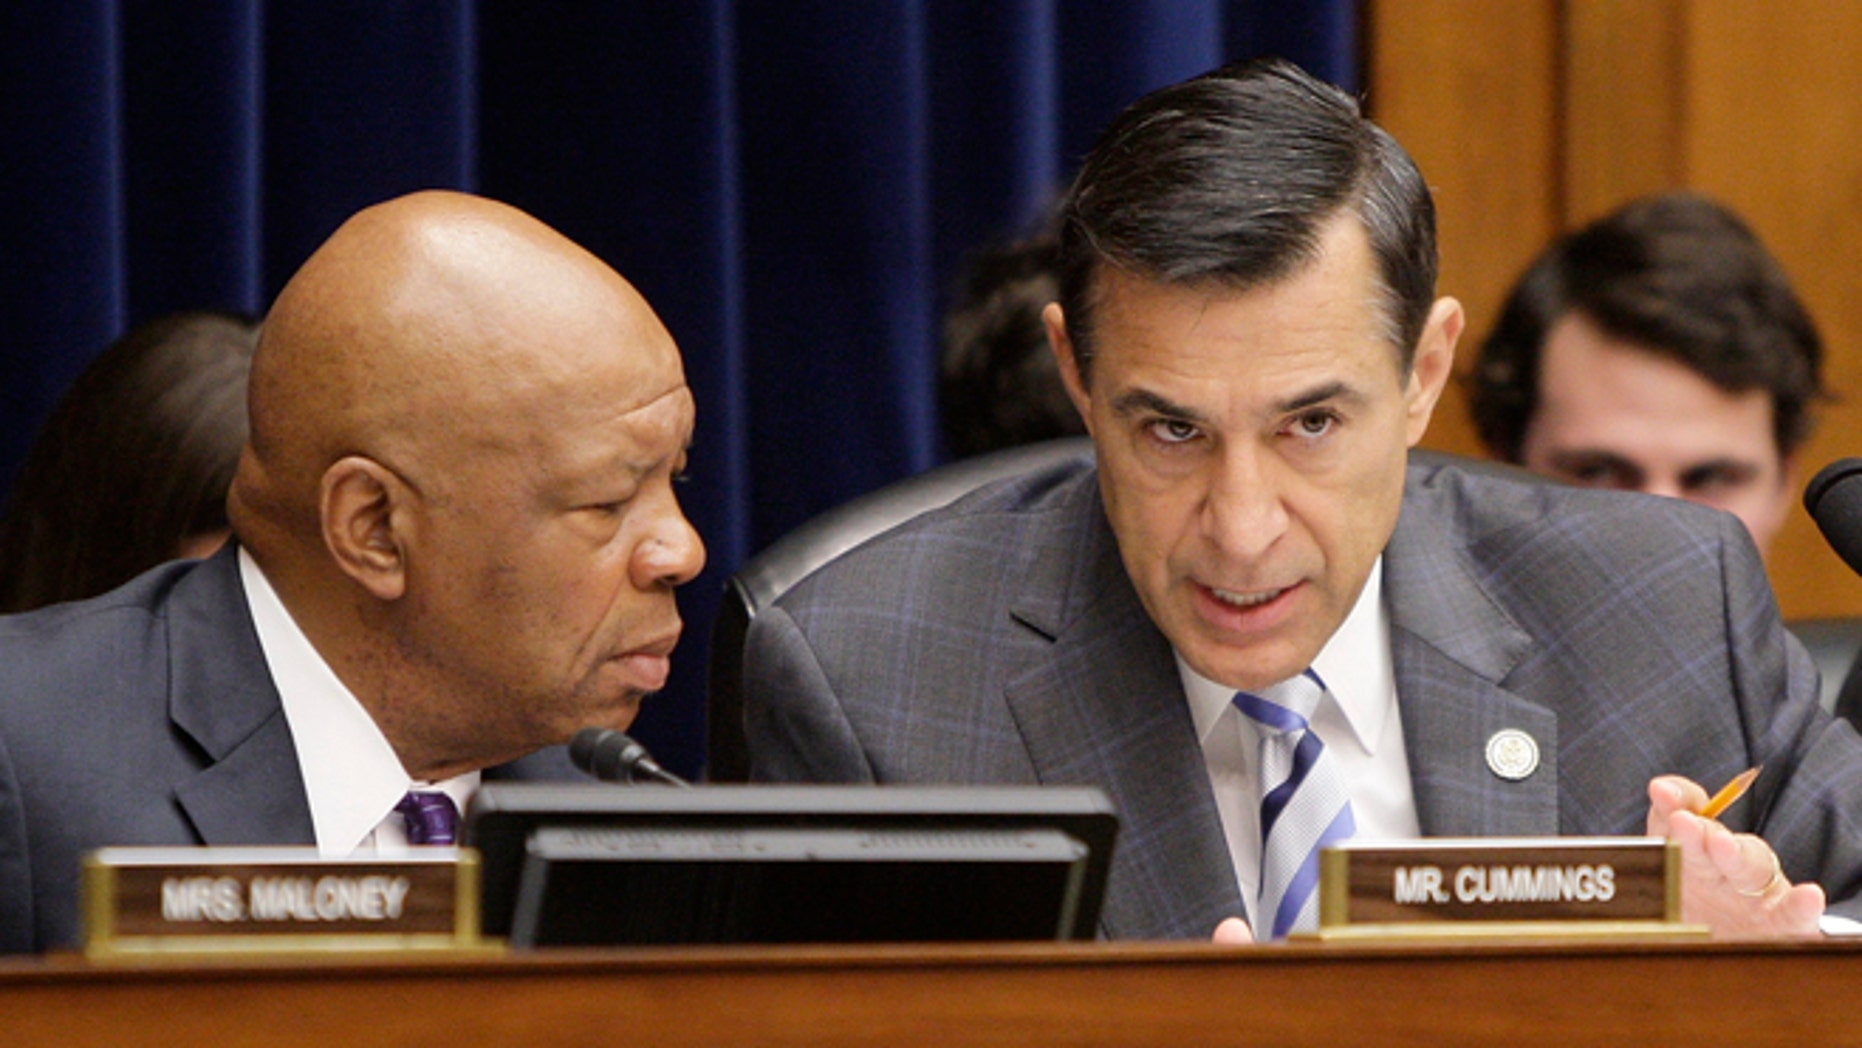 FILE: May 22, 2013: Reps. Elijah Cummings, D-Md., and Darrell Issa, R-Calif., at a House Oversight and Government Reform Committee hearing in Washington, D.C.